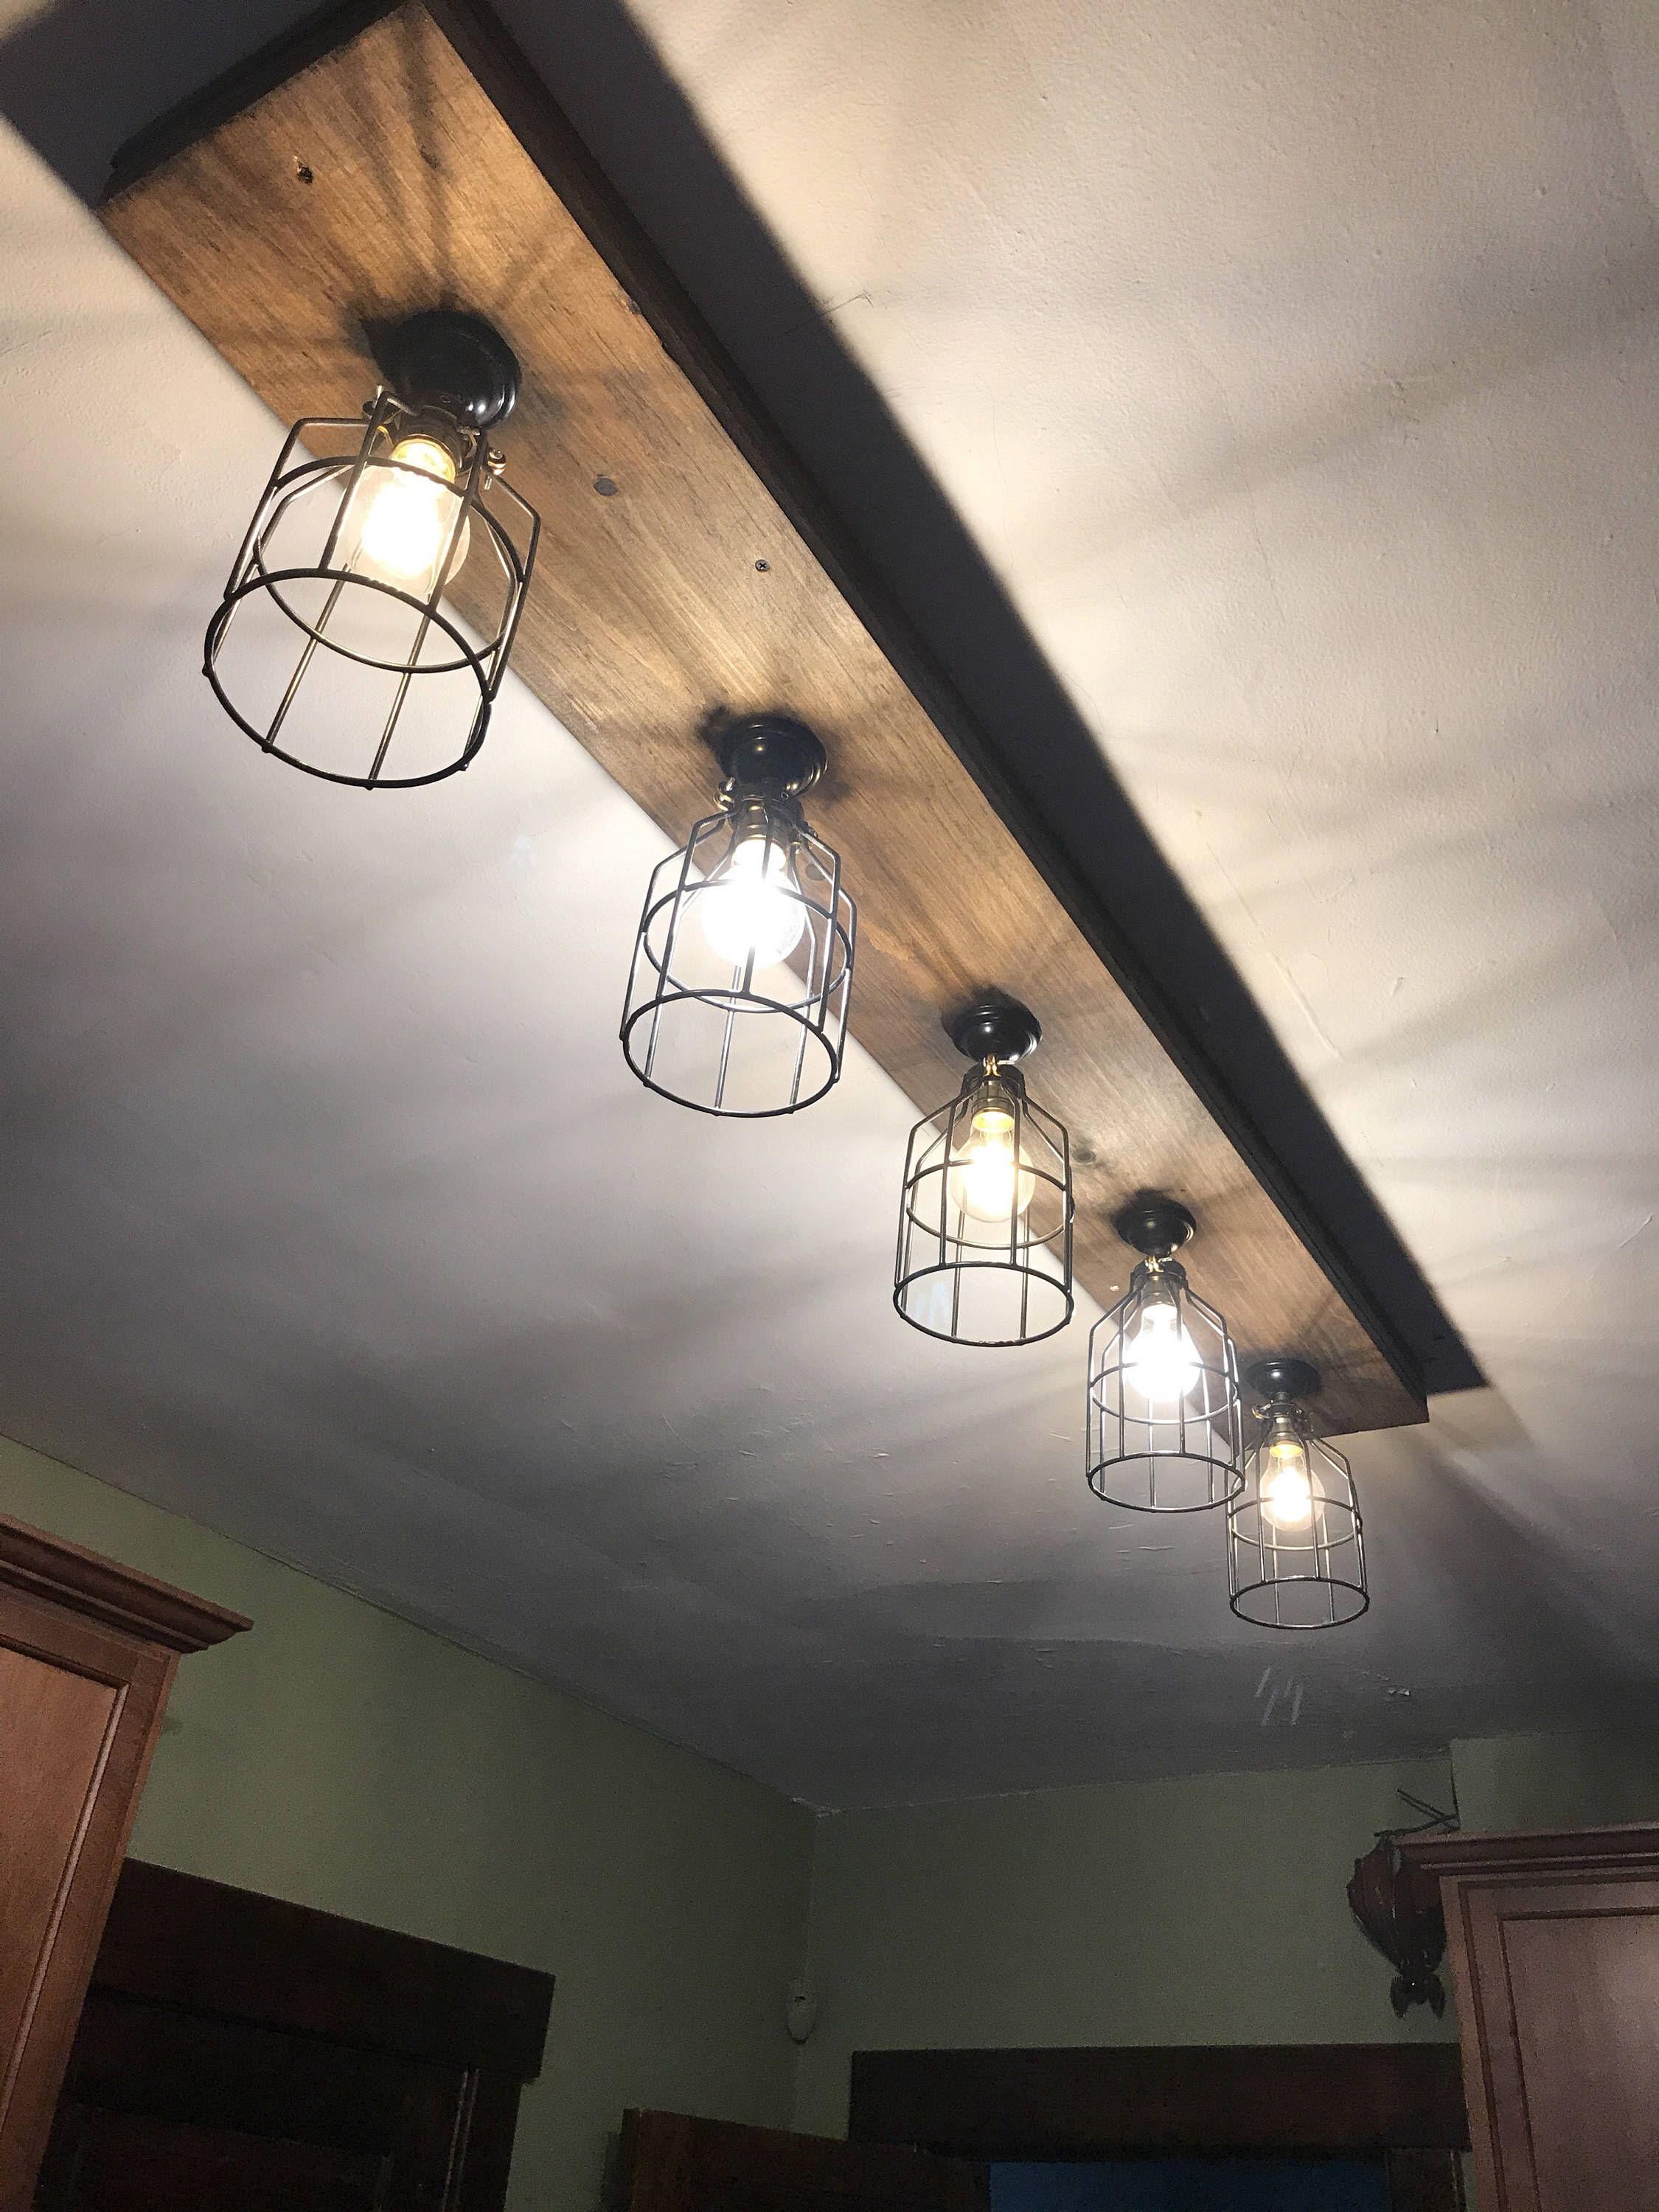 Rustic Farmhouse Beam Light Light Fixtures Up To 8 Feet Long Rustic Track Lighting Wood Beam Light Bulbs Included Made In The Usa Rustic Light Fixtures Rustic Kitchen Lighting Rustic Track Lighting